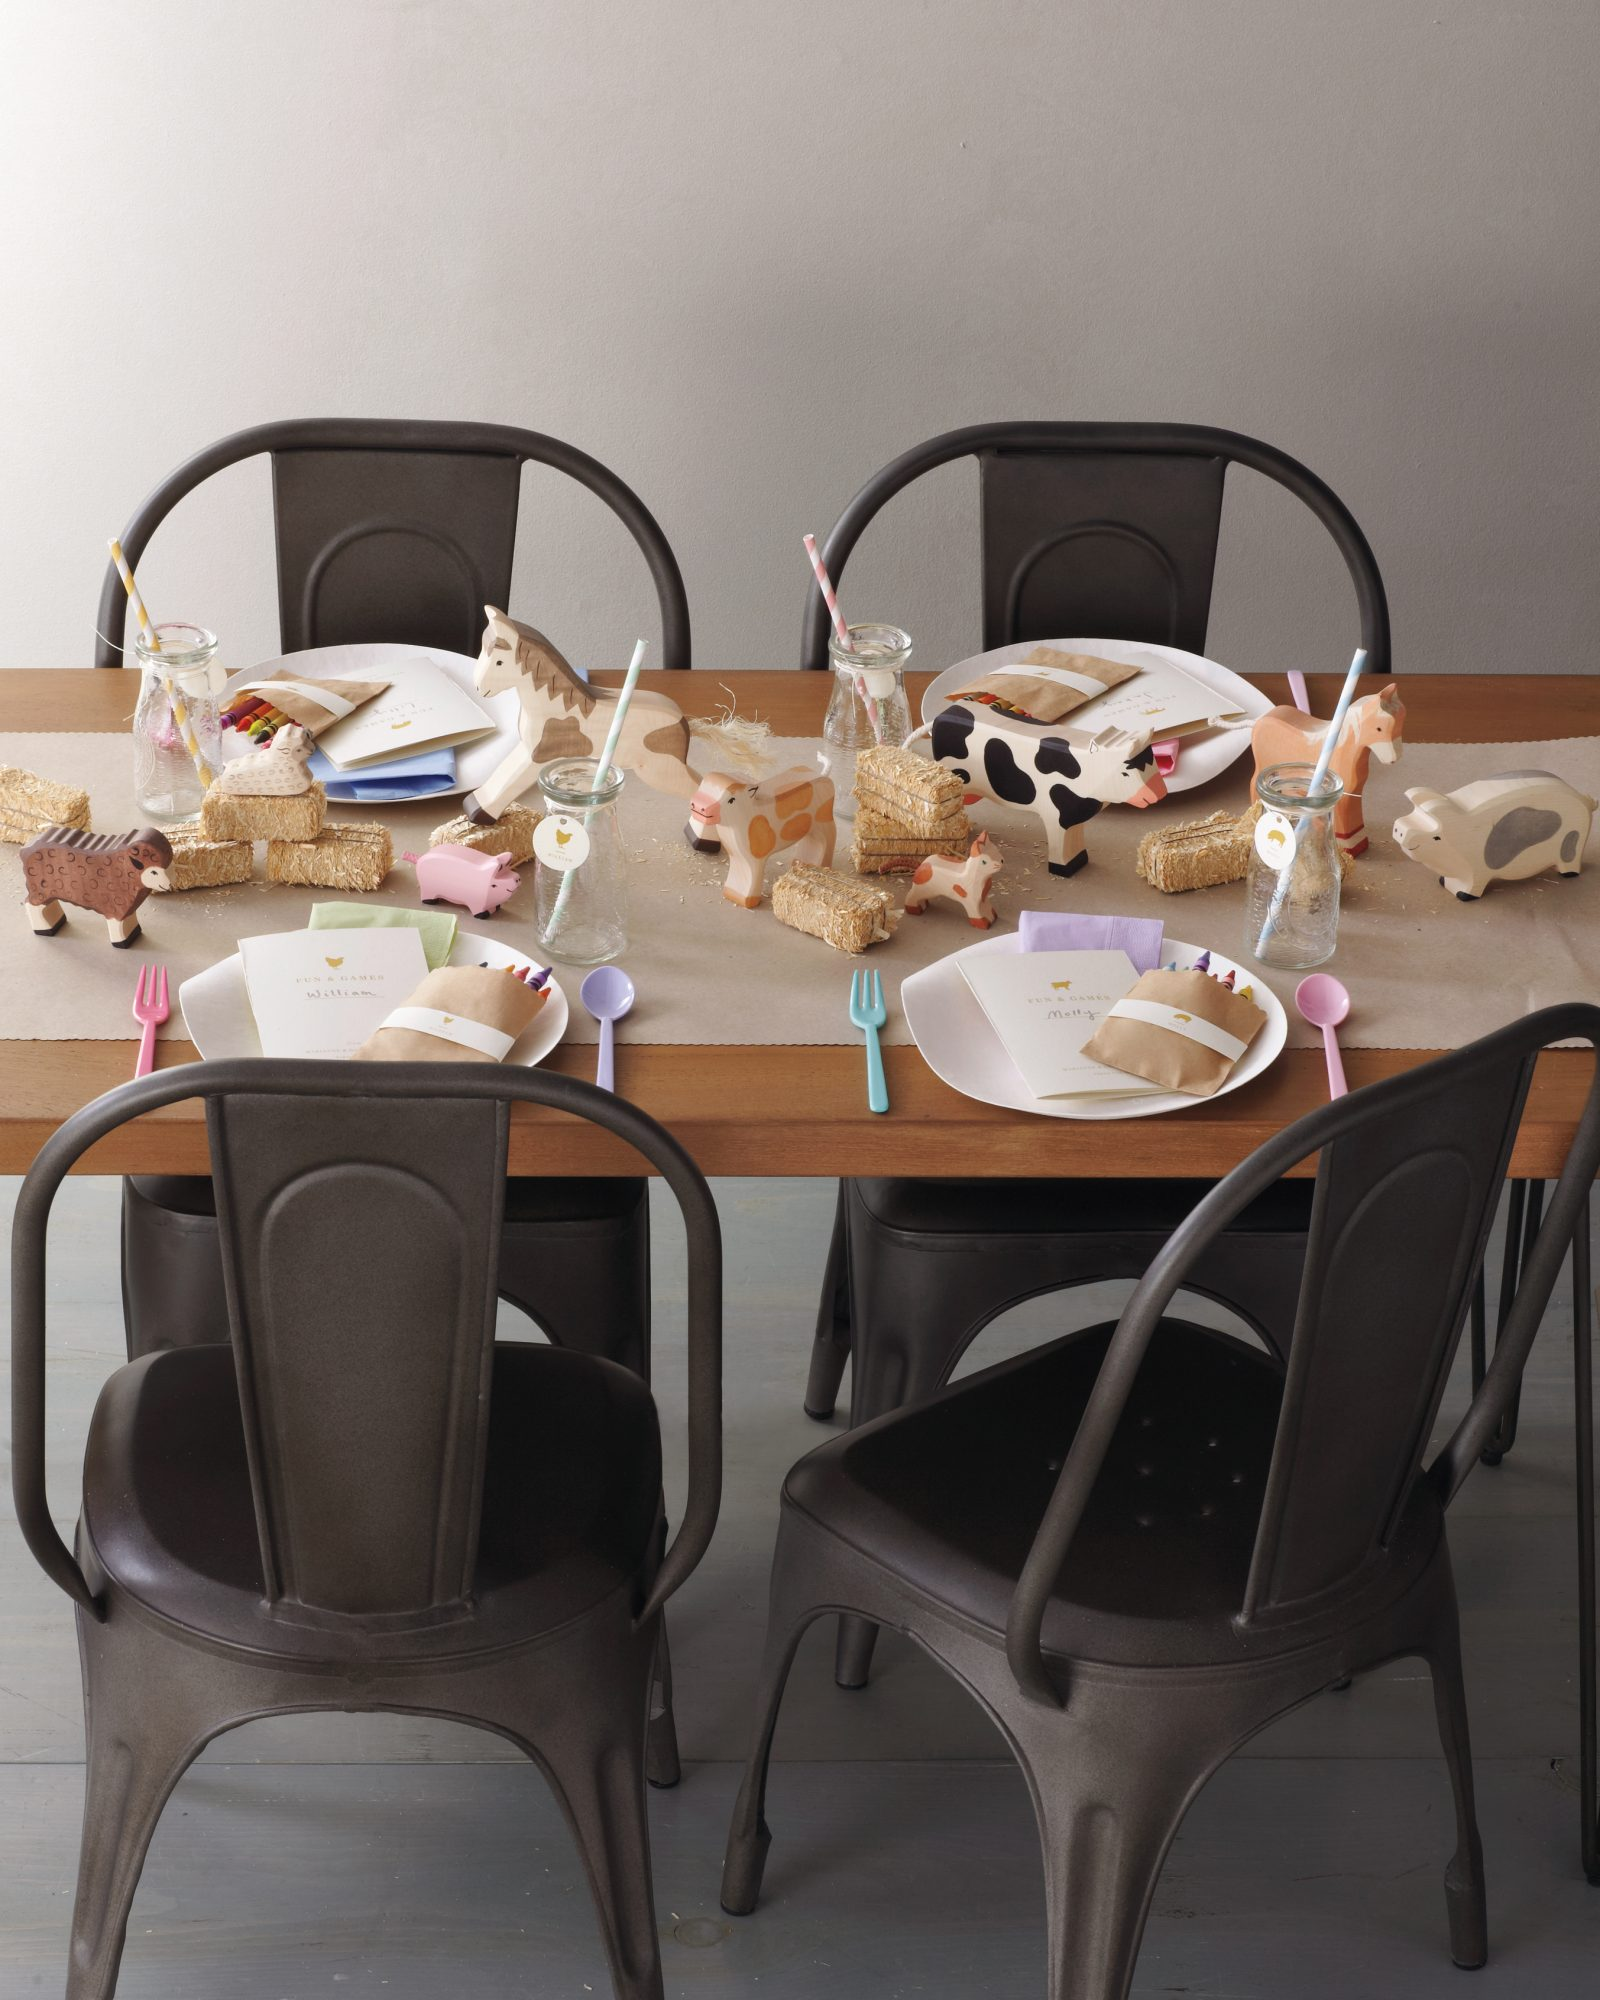 kids-table-052-mwd109799.jpg